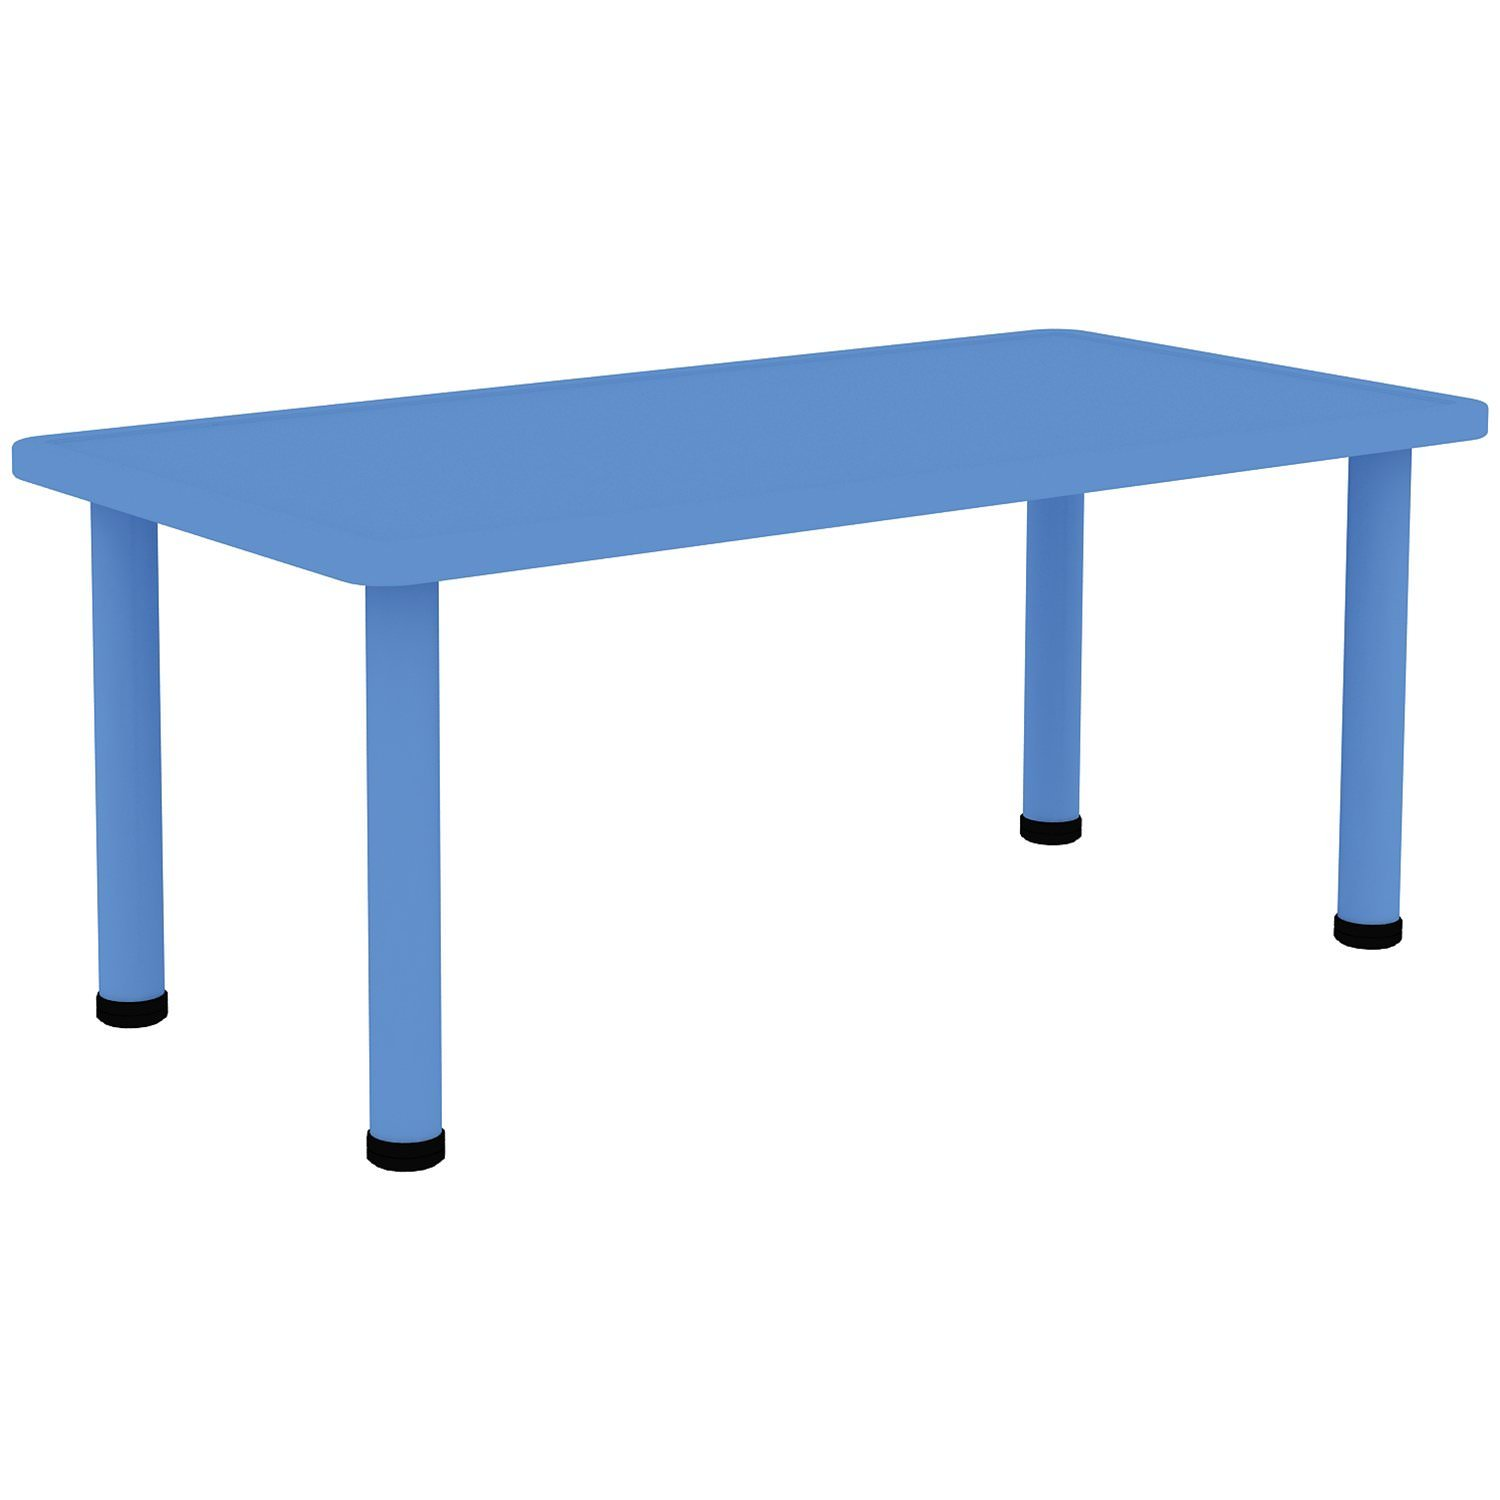 2xhome Blue Kids Table Height Adjustable 21 5 Quot 22